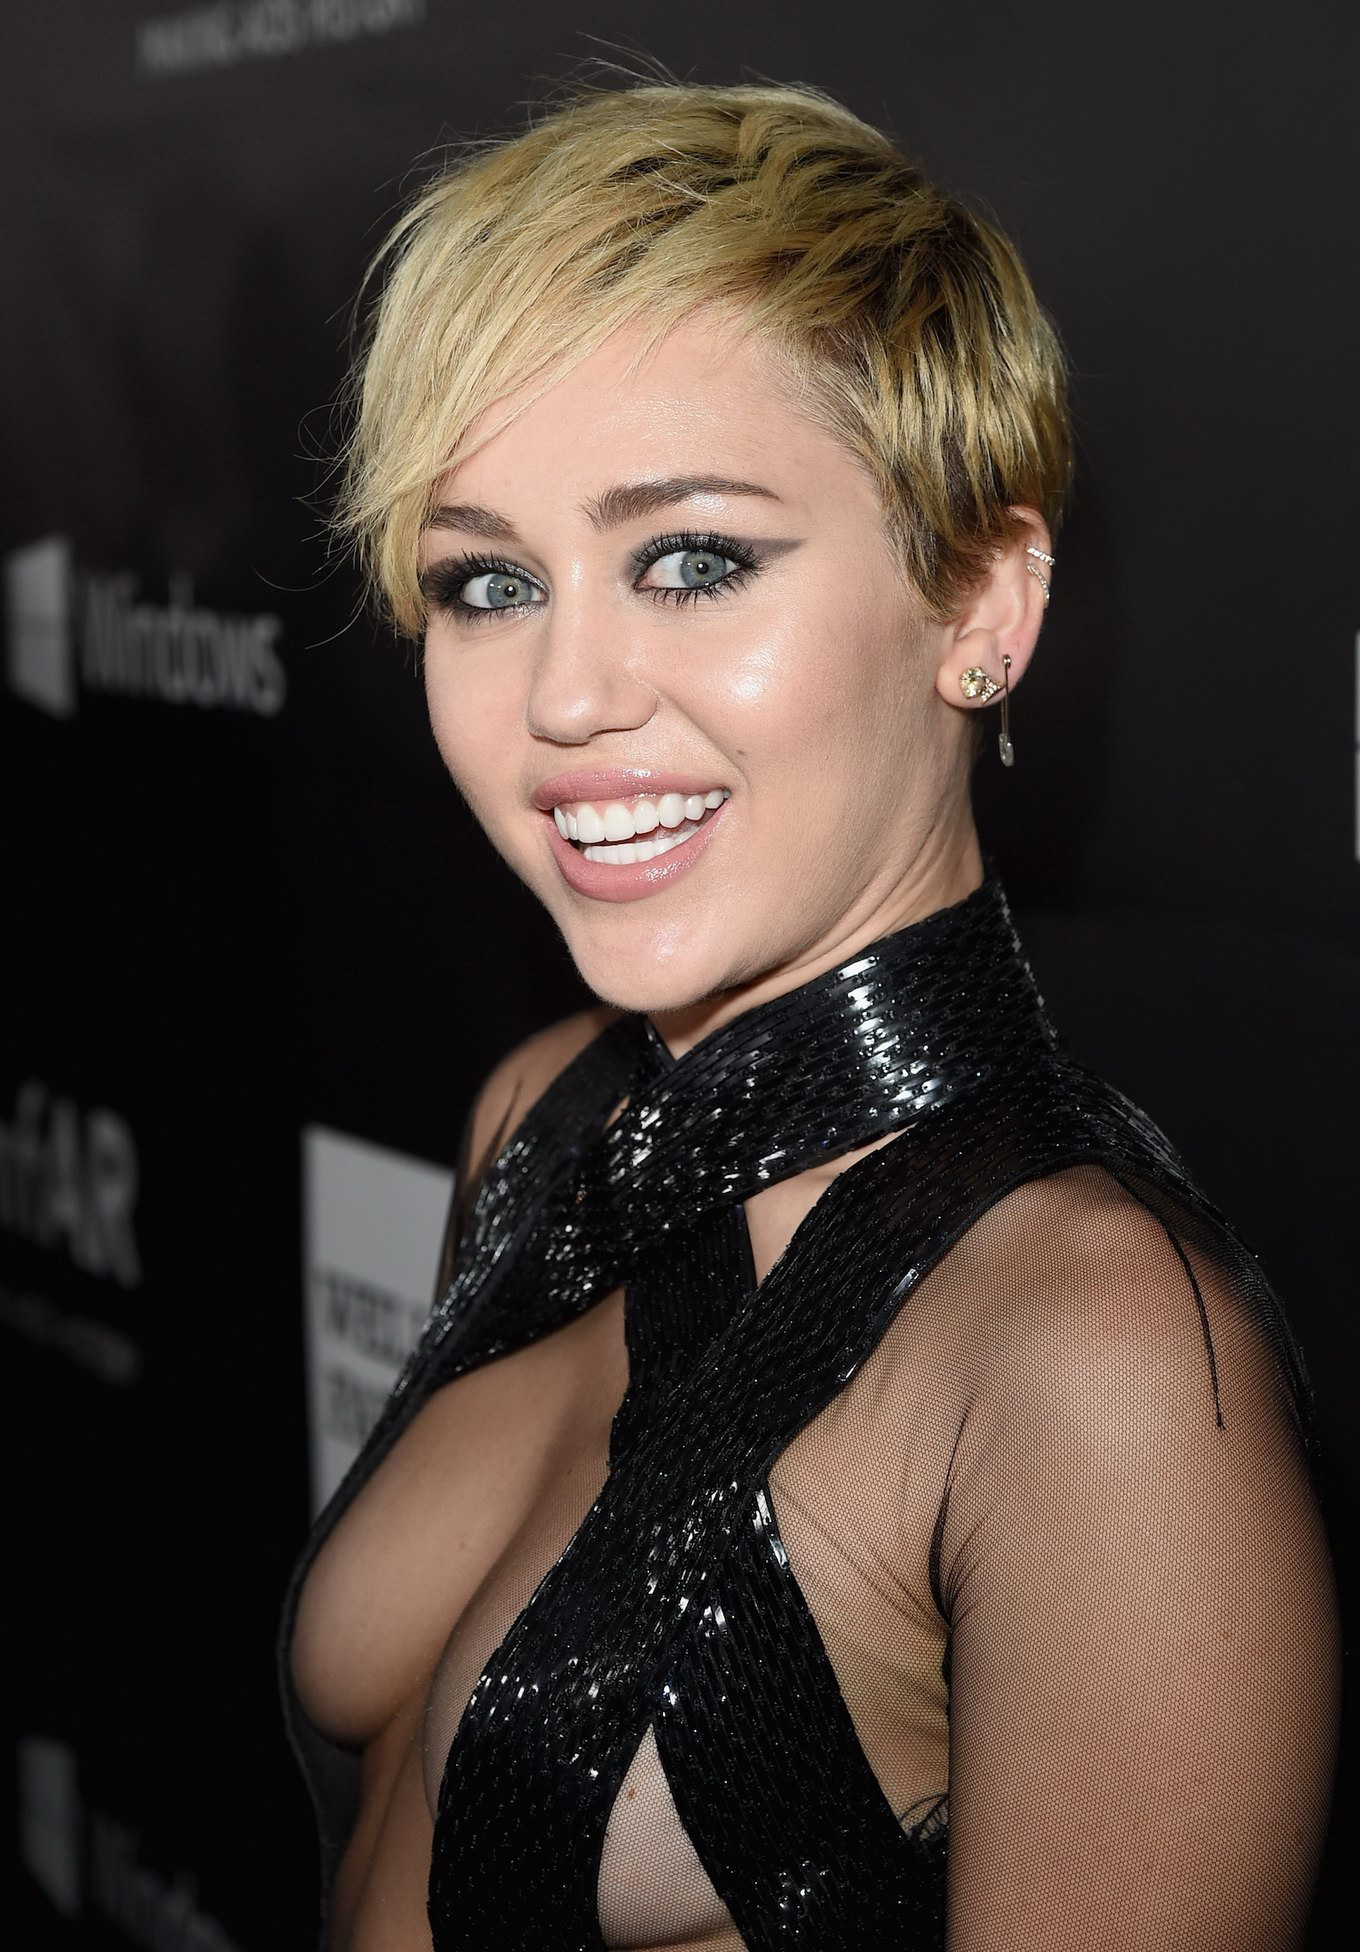 Miley Cyrus Braless In Black See-through Dress At AmfAR LA